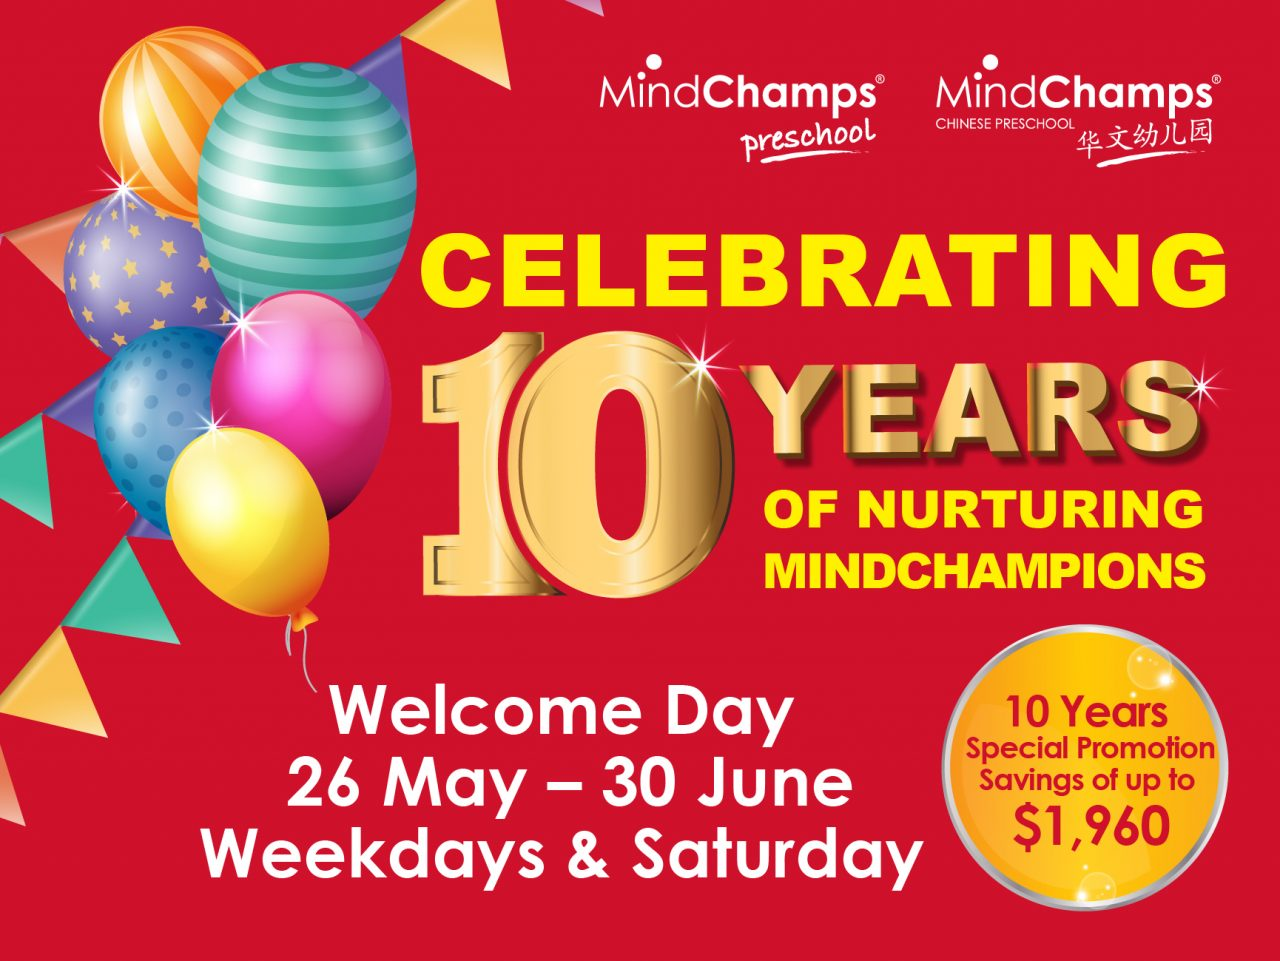 https://s3-ap-southeast-1.amazonaws.com/mindchamps-prod-wp/wp-content/uploads/2018/05/16210115/Welcome-Day-Banner-830x623pxstatic-01-1280x961.jpg